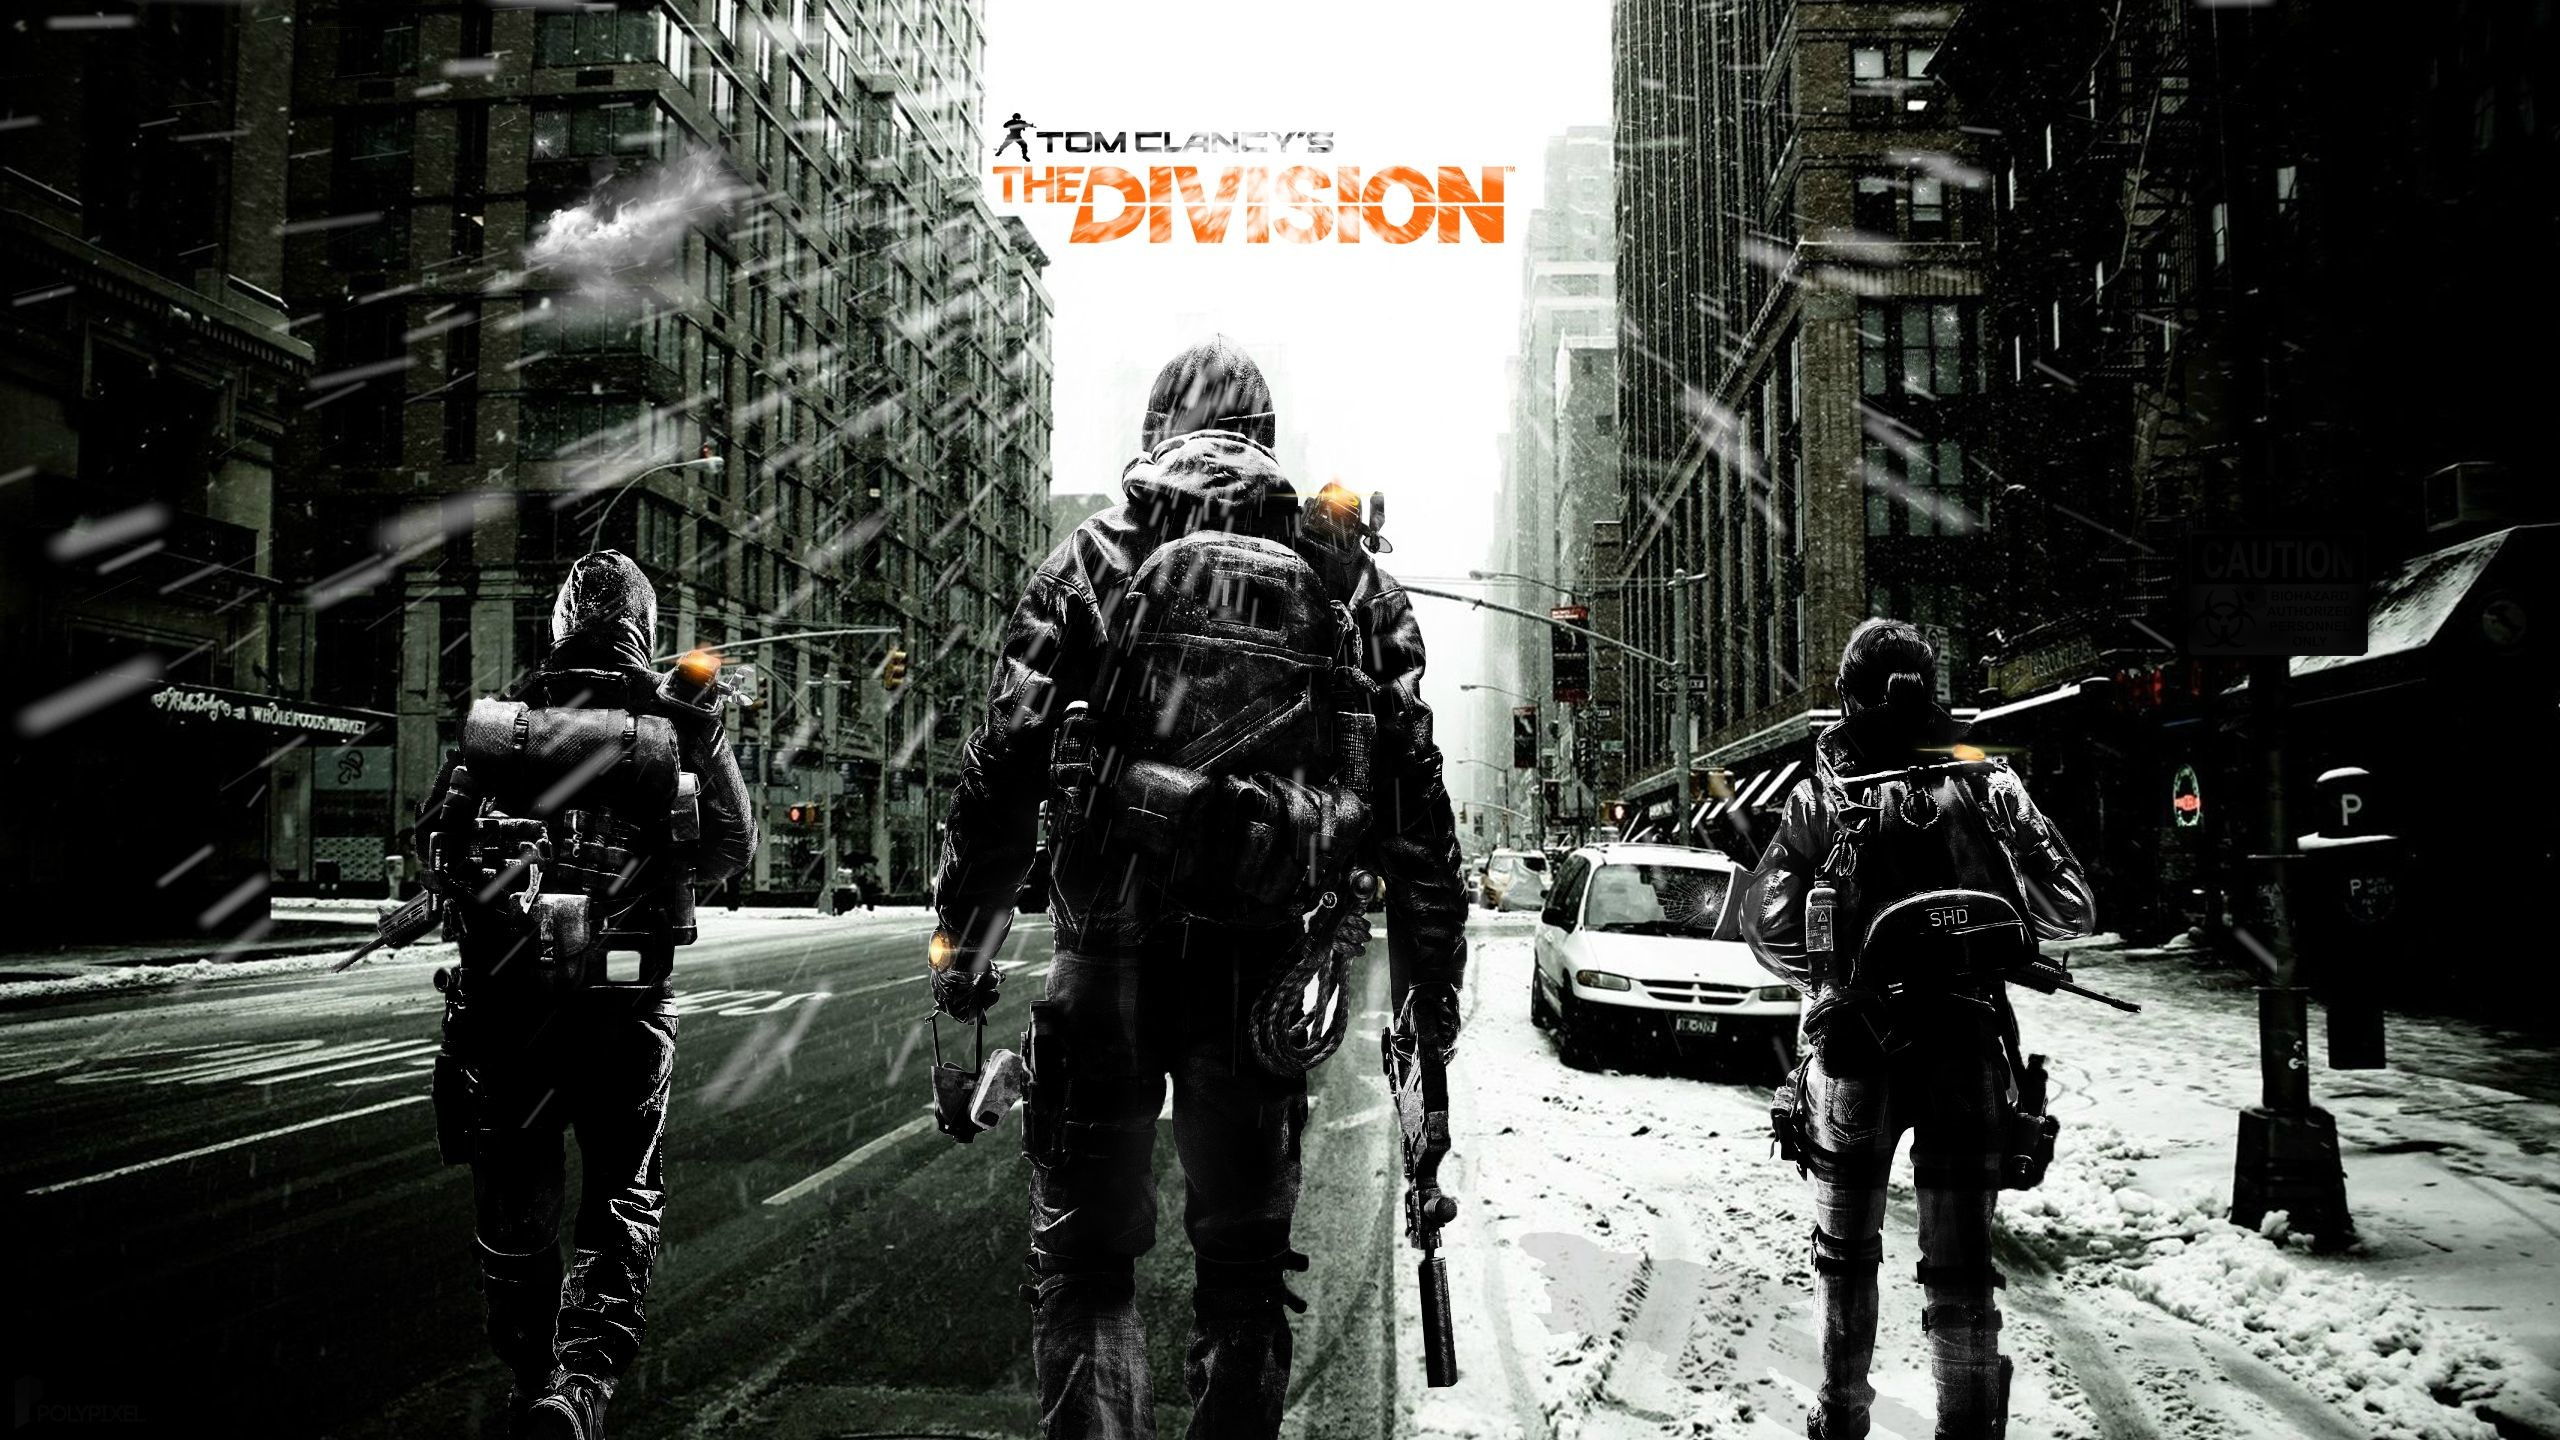 The Division Video Game Wallpaper The Division Wallpaper 1080p